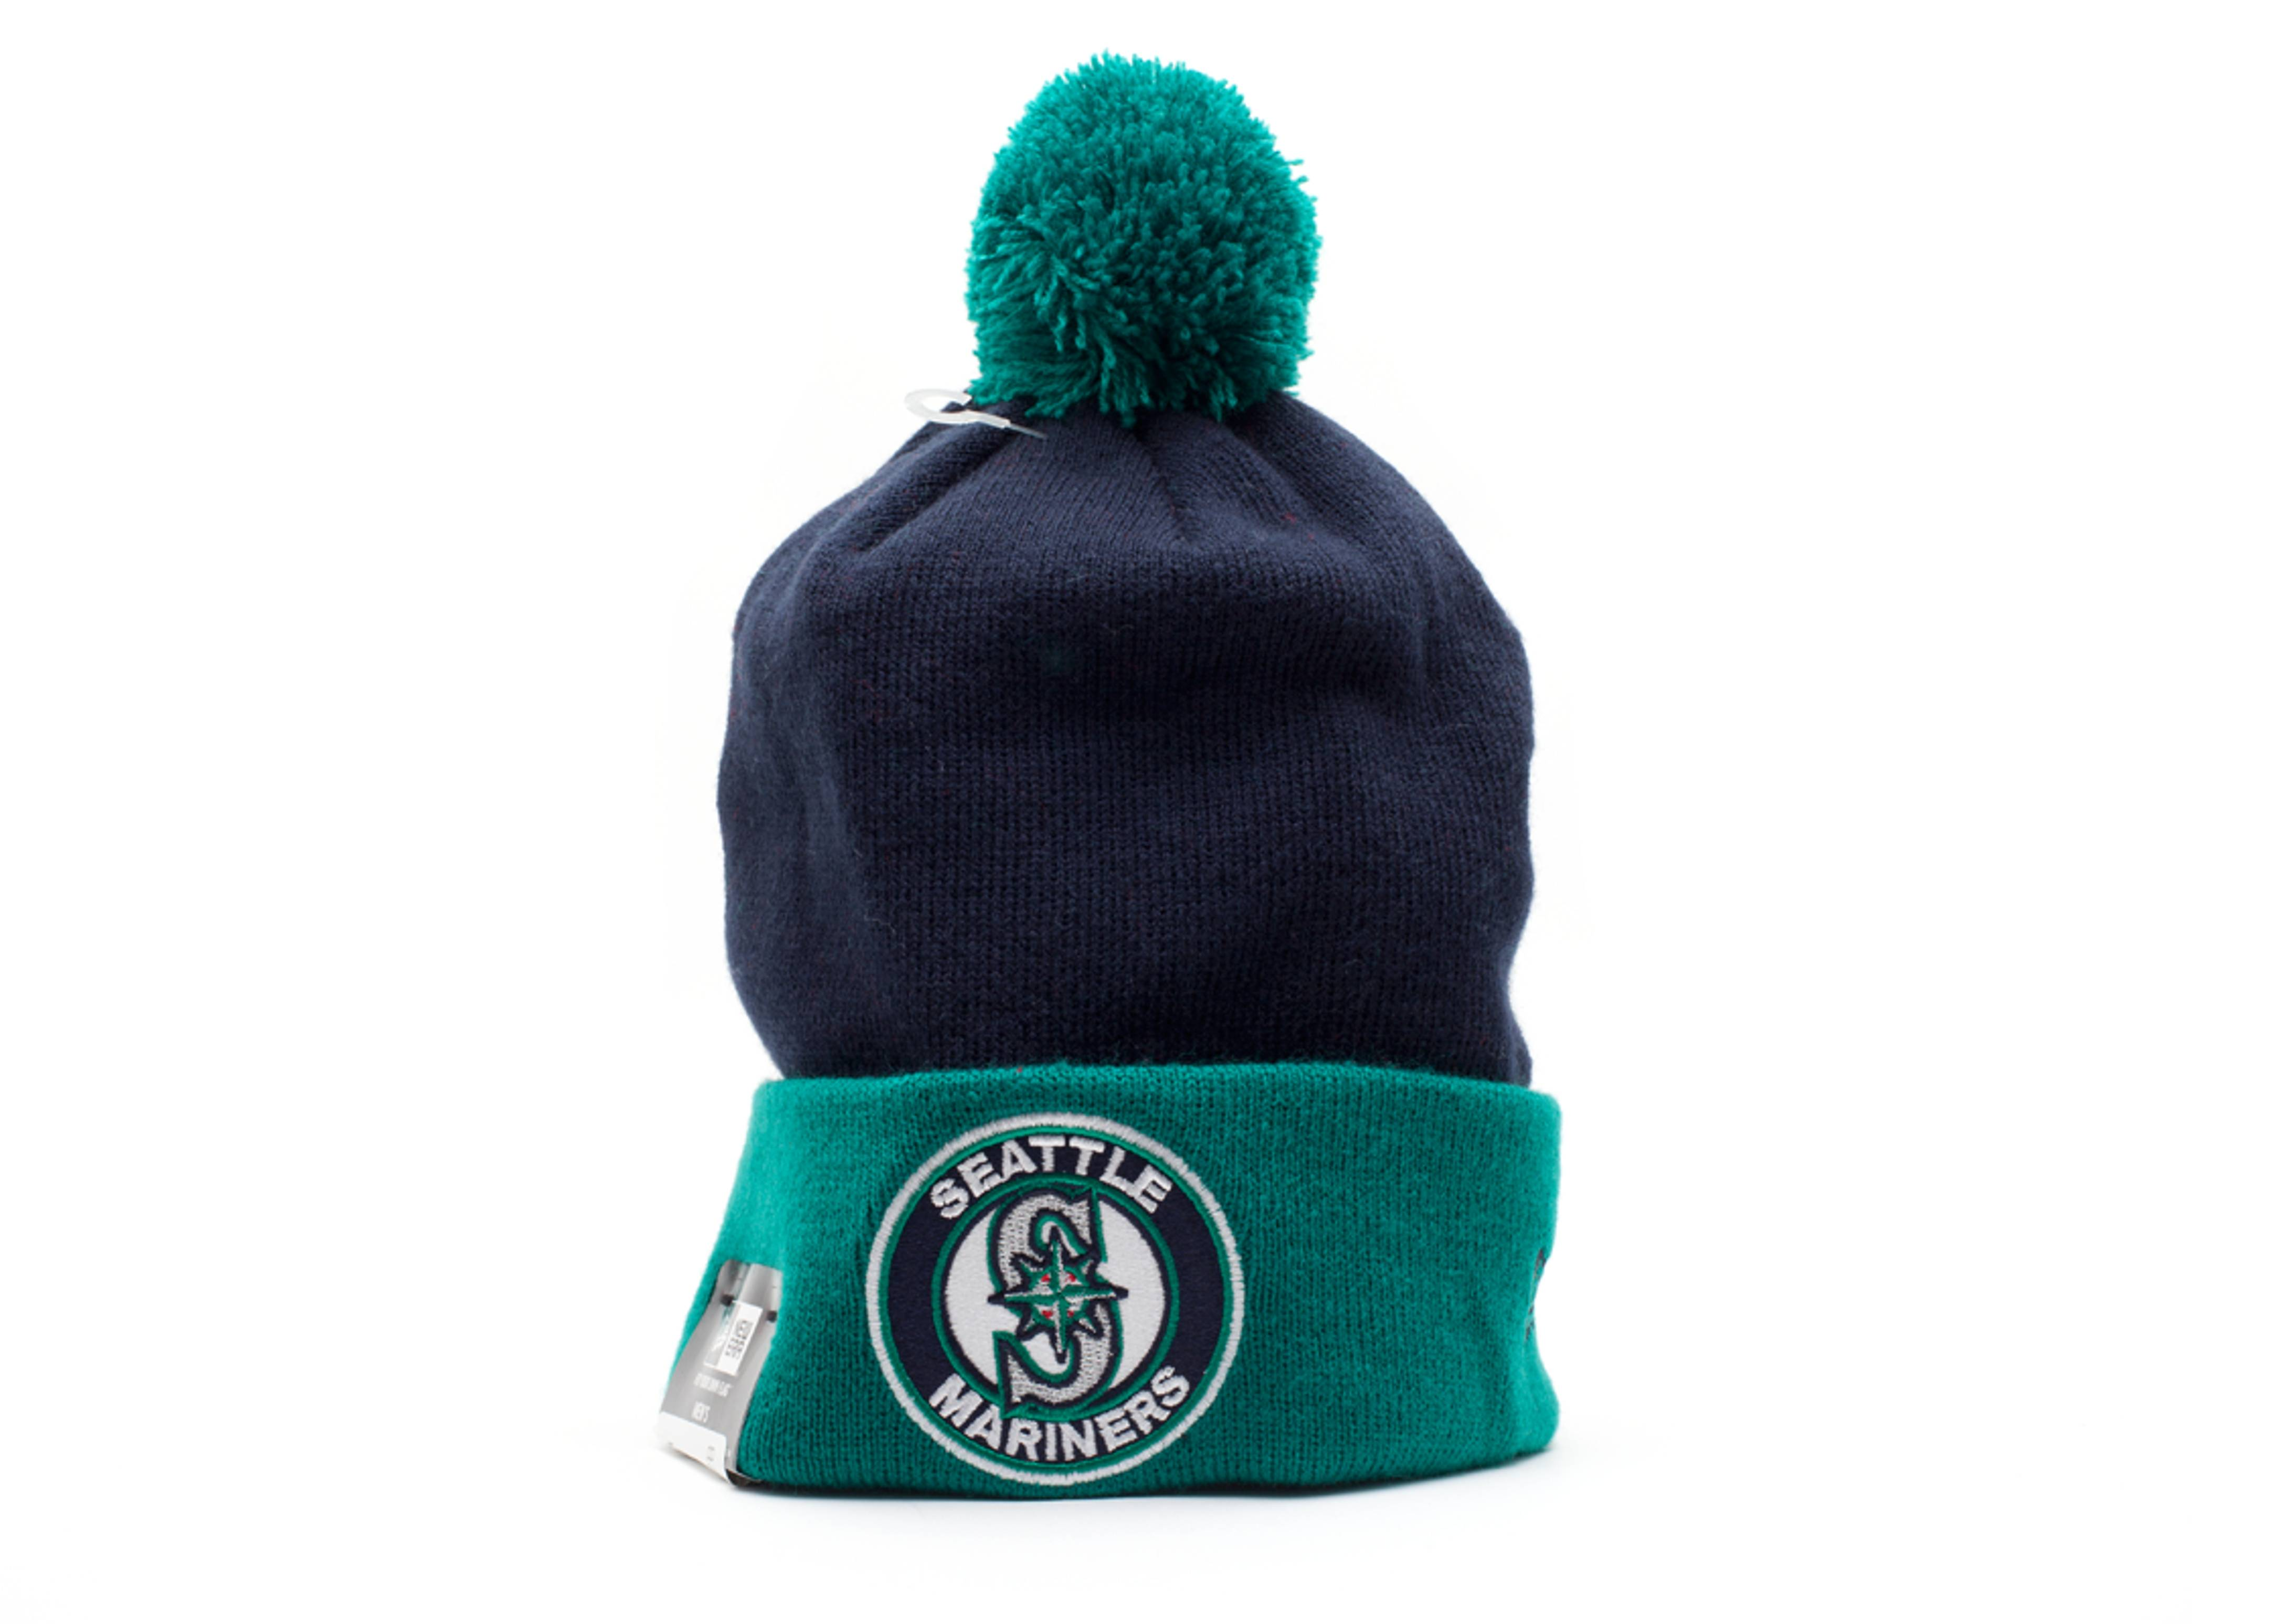 seattle mariners cuffed pom knit beanie